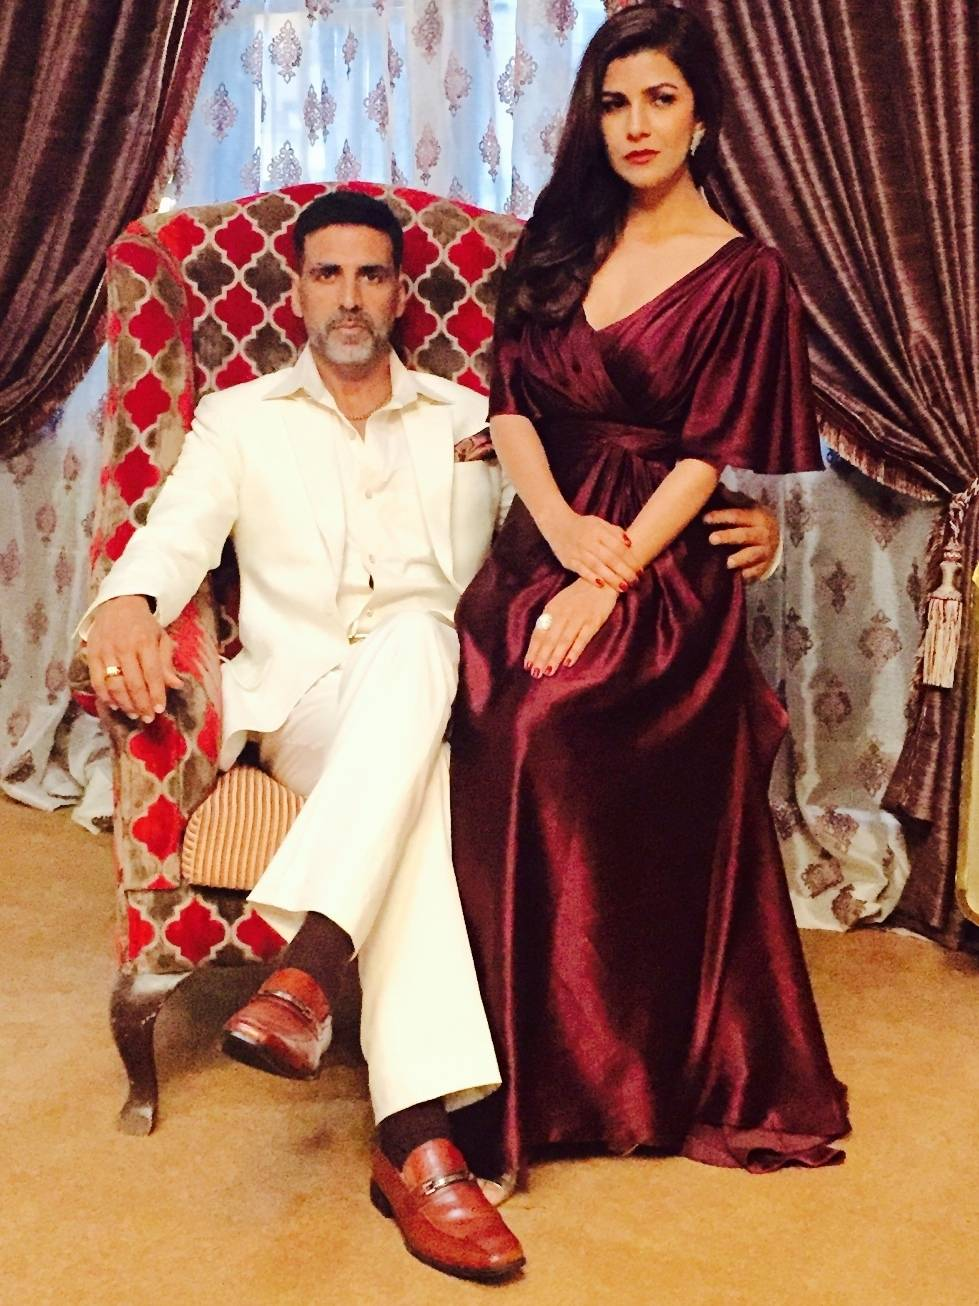 Airlift Movie Akshay Kumar Upcoming movie release date 22 january 2016 cast poster